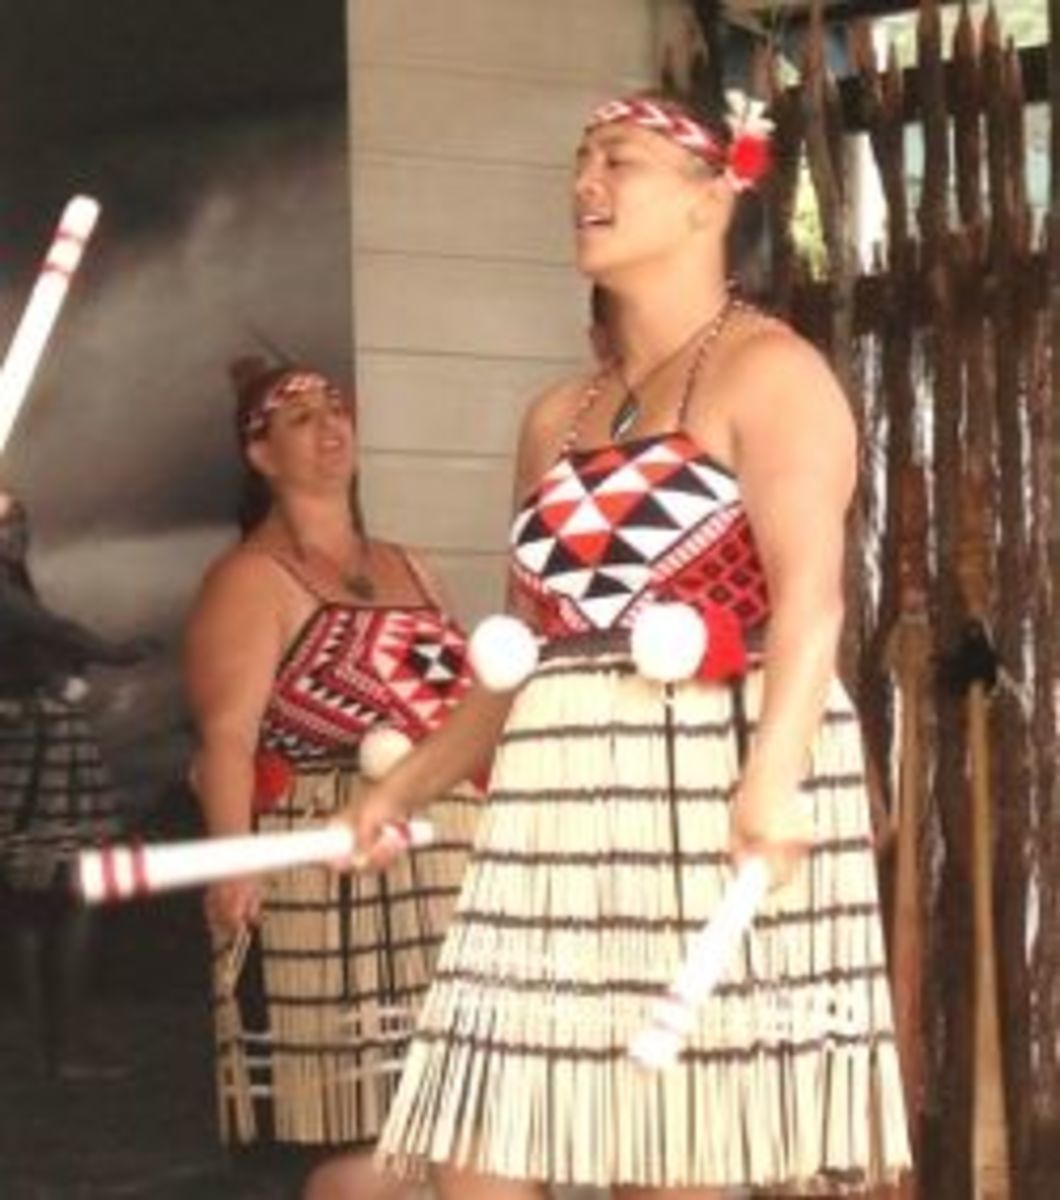 how-to-play-the-girl-scout-maori-stick-game